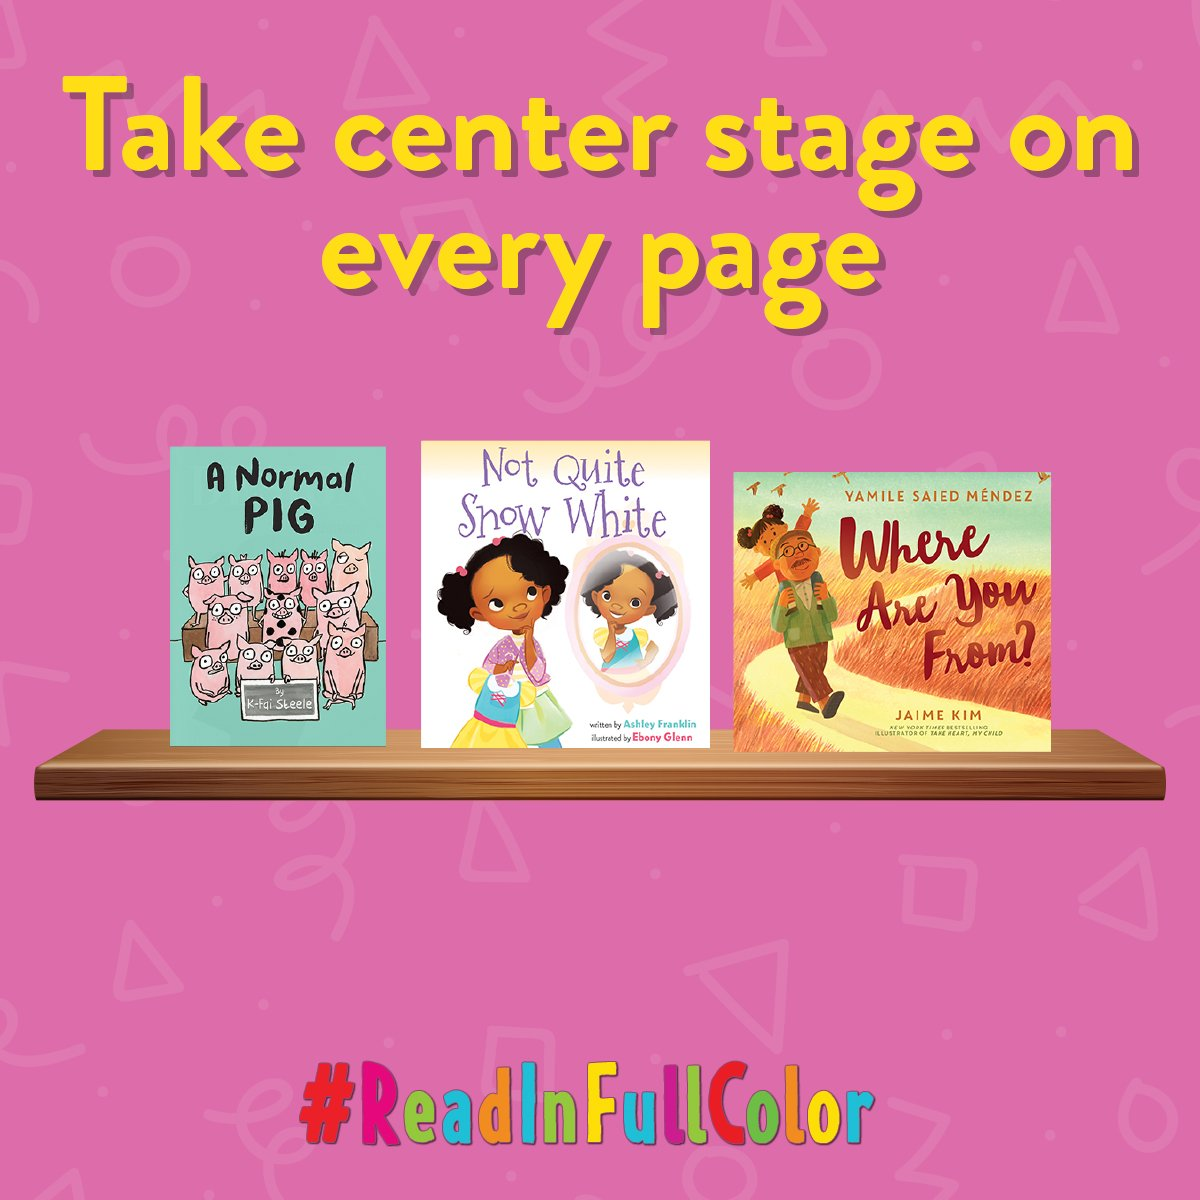 Participate in #ReadInFullColor, a movement to highlight amazing picture books with #ownvoices creators and inclusive stories like these! Use the hashtag or tag us to recommend books that shared your story. @kfaisteele @DifferentAshley @artsyebby @YamileSMendez @jaimekimil